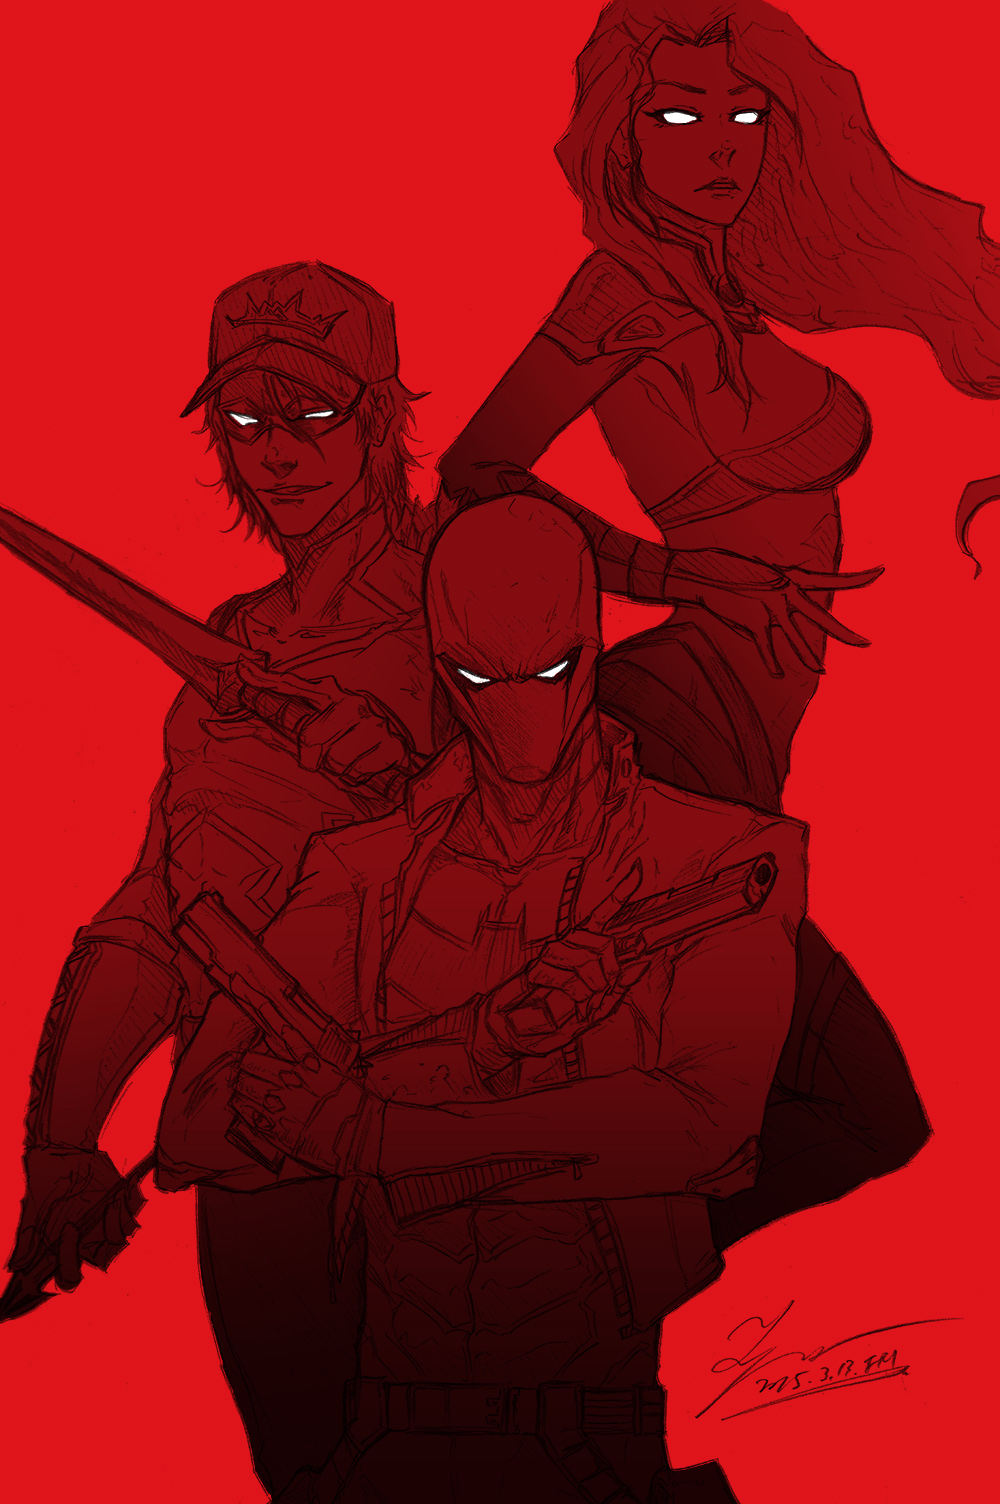 Sketch Red Hood And The Outlaws By Tryvor On Deviantart